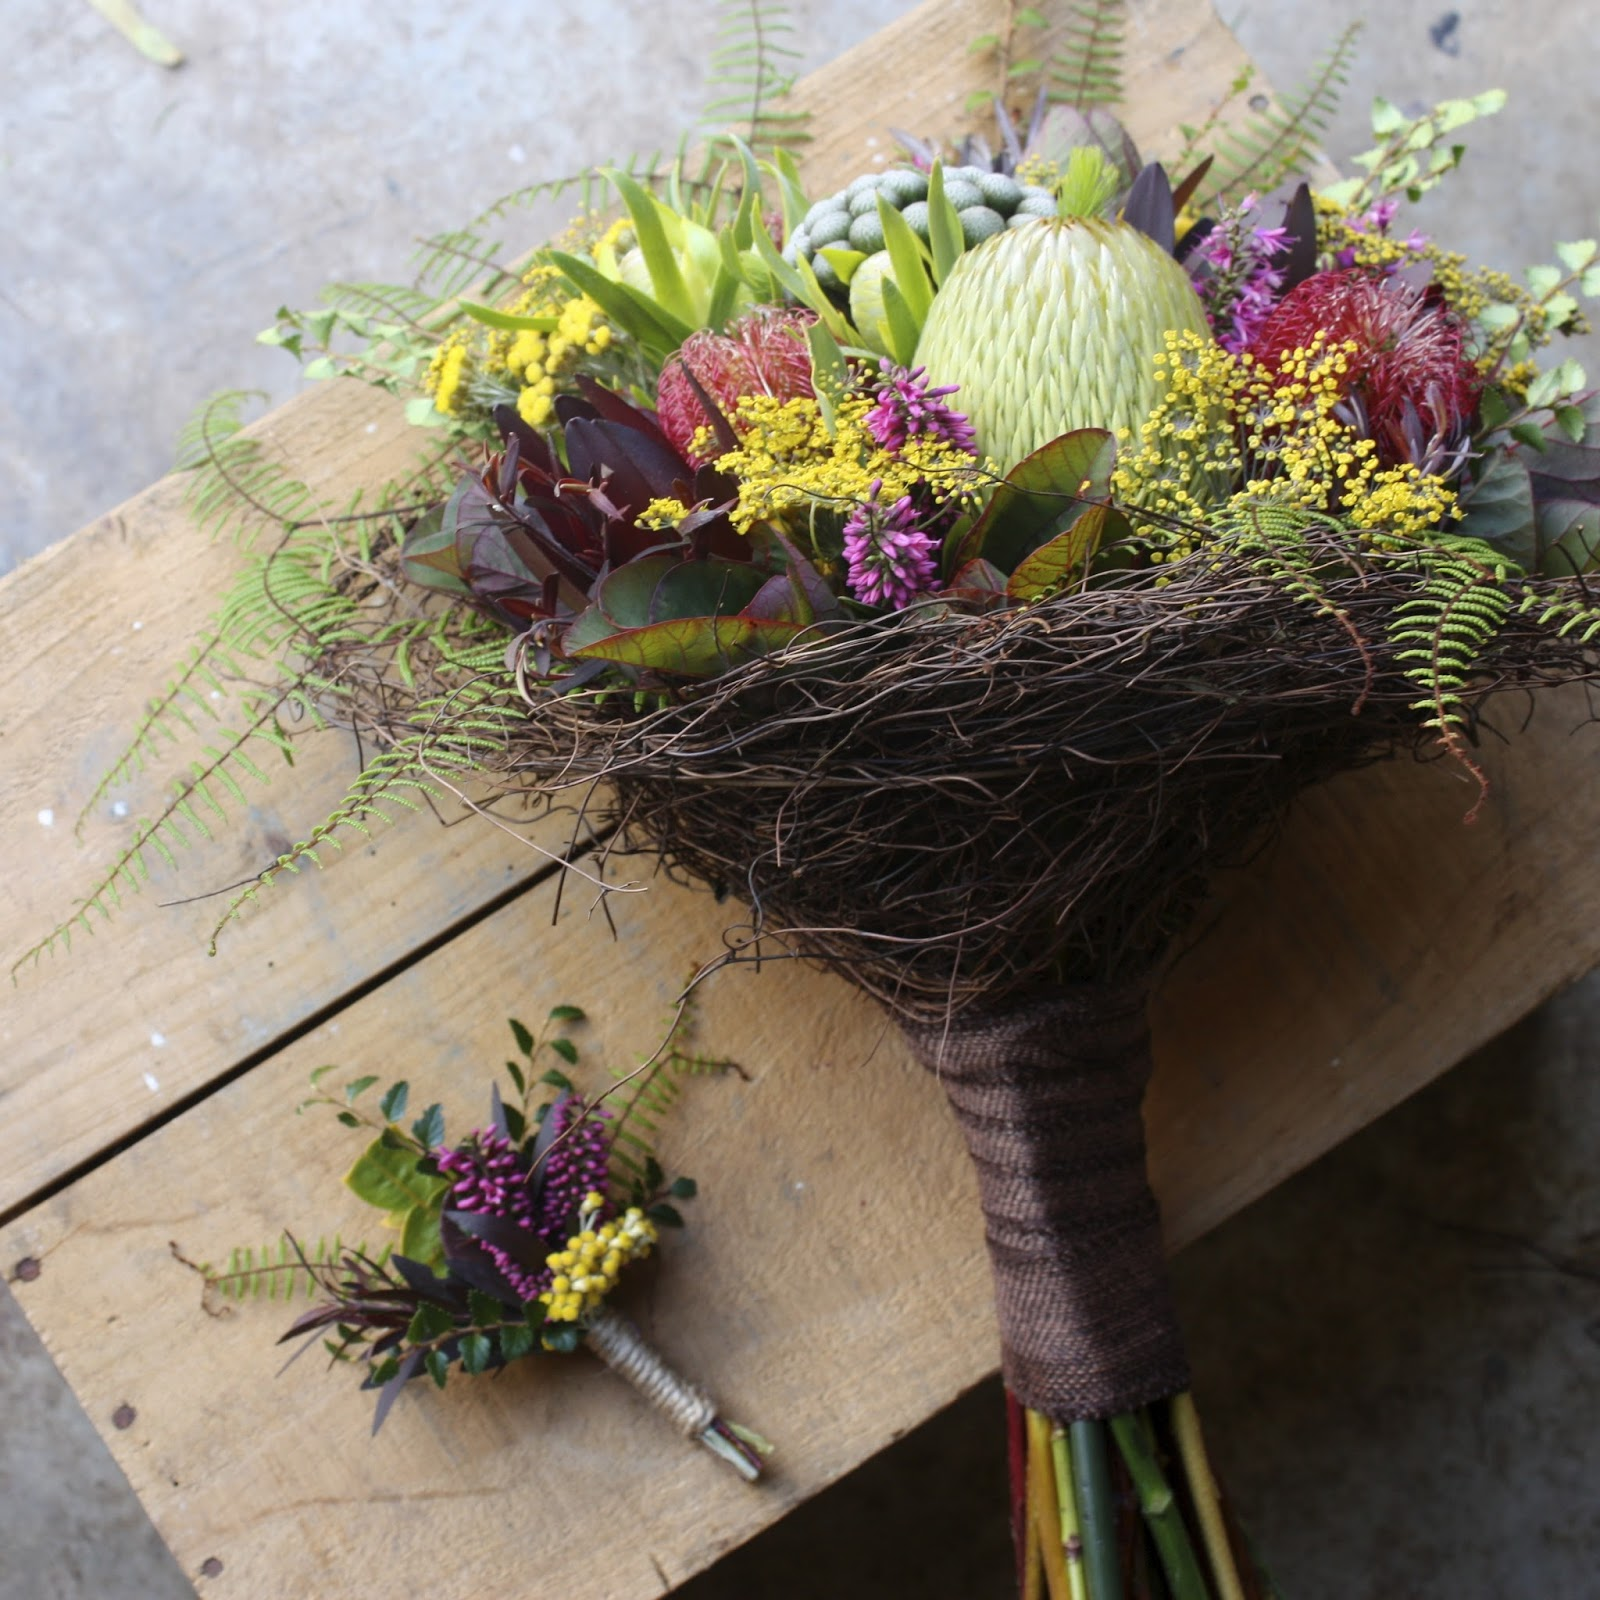 Swallows Nest Farm Birds Nest Bouquets For A Cradle Mountain Wedding In February